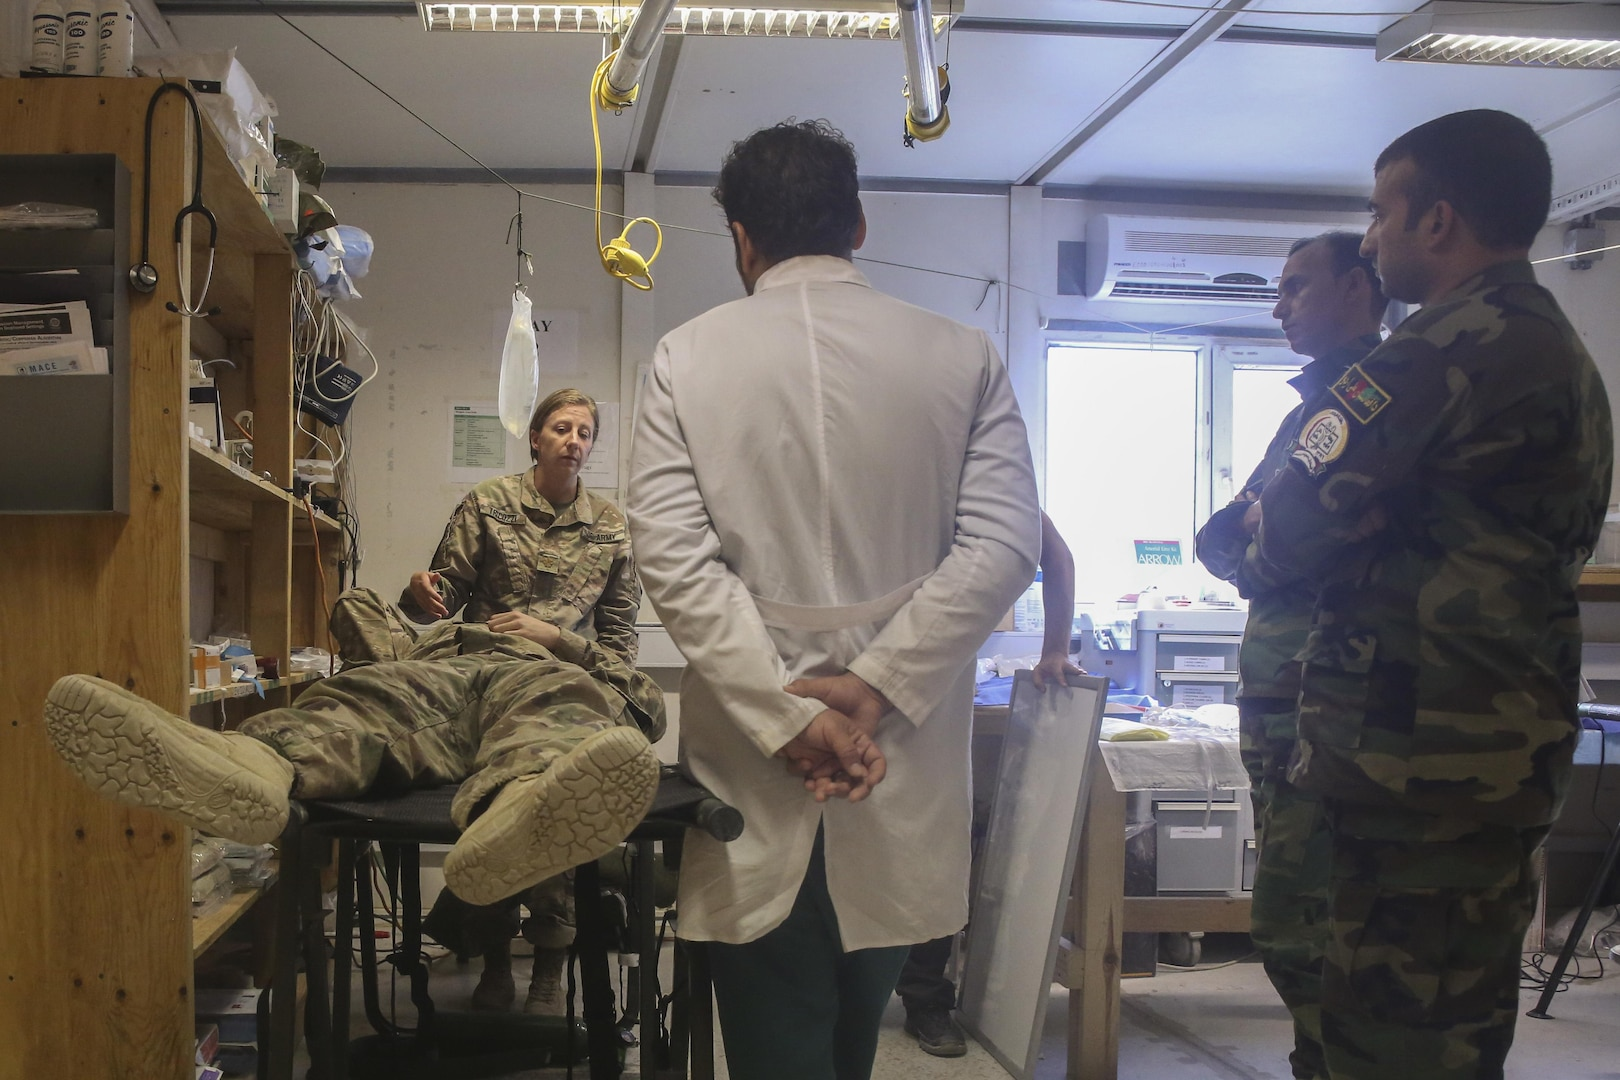 A U.S. Army soldier with 2nd Forward Surgical Team, U.S. Forces-Afghanistan demonstrates proper head trauma treatment on a simulated casualty to Afghan National Army medical personnel assigned to 215th Corps at Camp Shorab, Afghanistan, Aug. 9, 2017. Several ANA soldiers from the 215th Corps Hospital collaborated with their U.S. counterparts to enhance their treatment capabilities. The hospital was one of three military hospitals to be awarded the President of Afghanistan's Medal of Excellence. In 2016, the 215th Corps Hospital conducted approximately 1,800 surgeries and evacuated approximately 700 deceased soldiers to their families. (U.S. Marine Corps photo by Sgt. Lucas Hopkins)